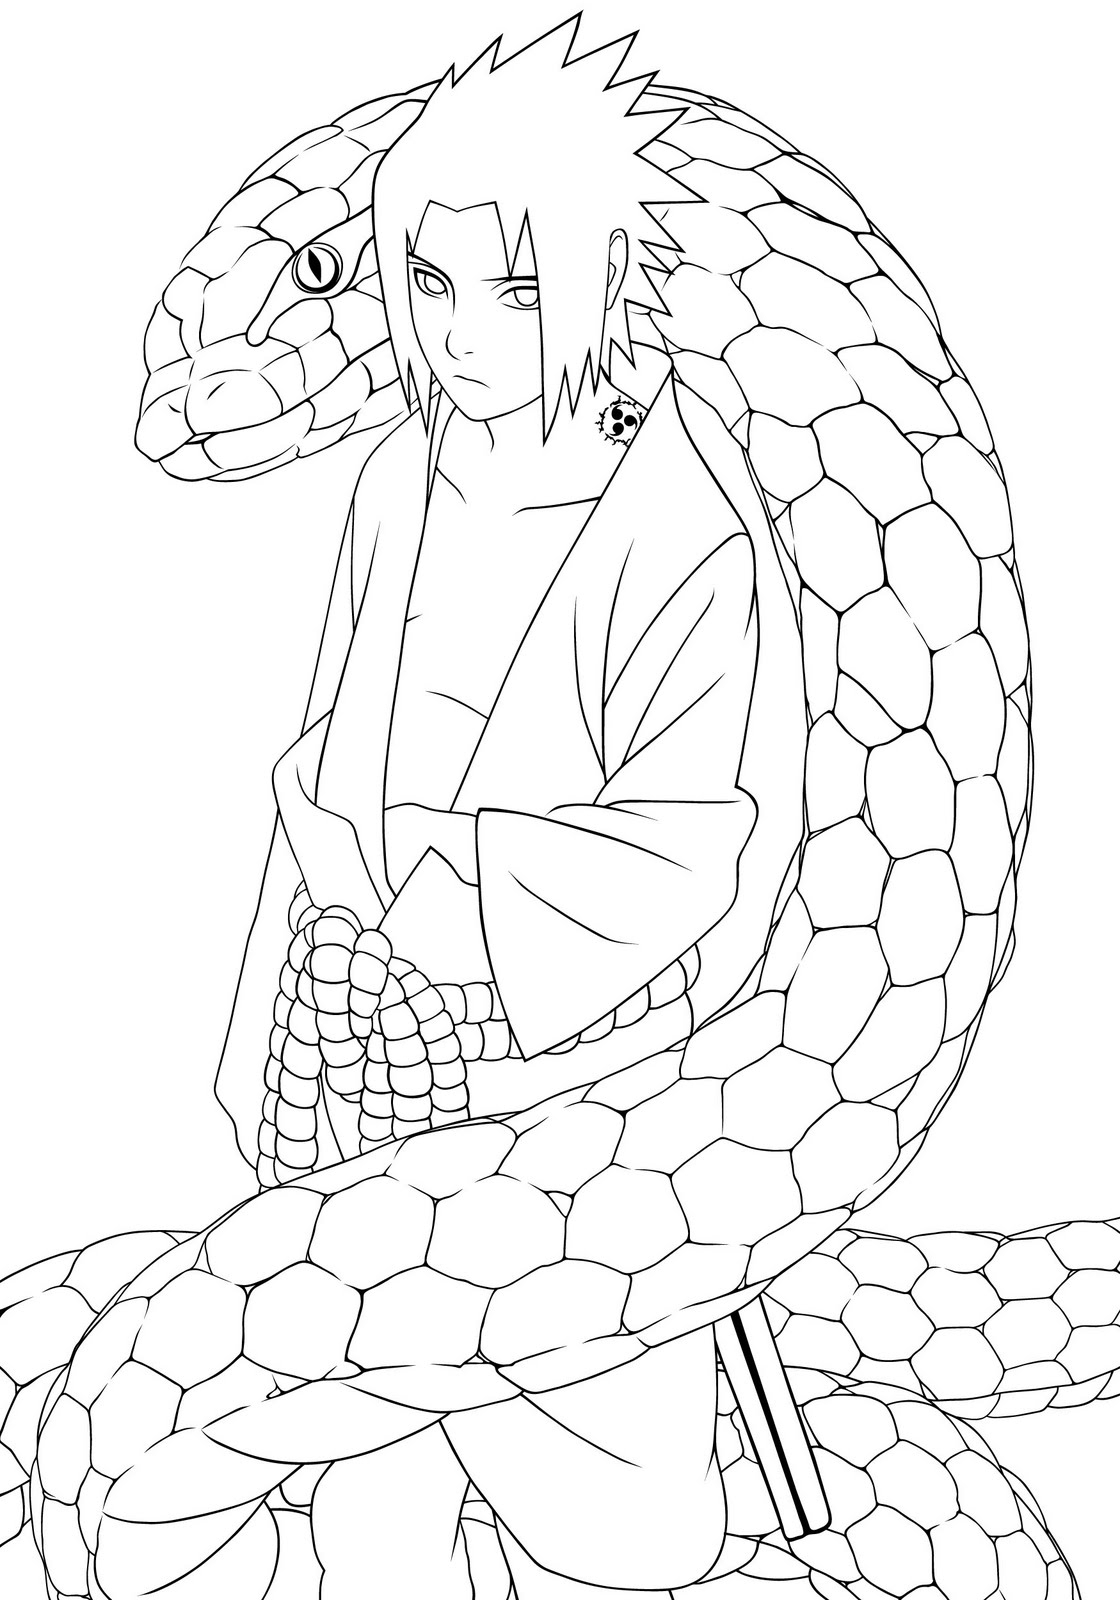 disney characters coloring pages - naruto coloring pages